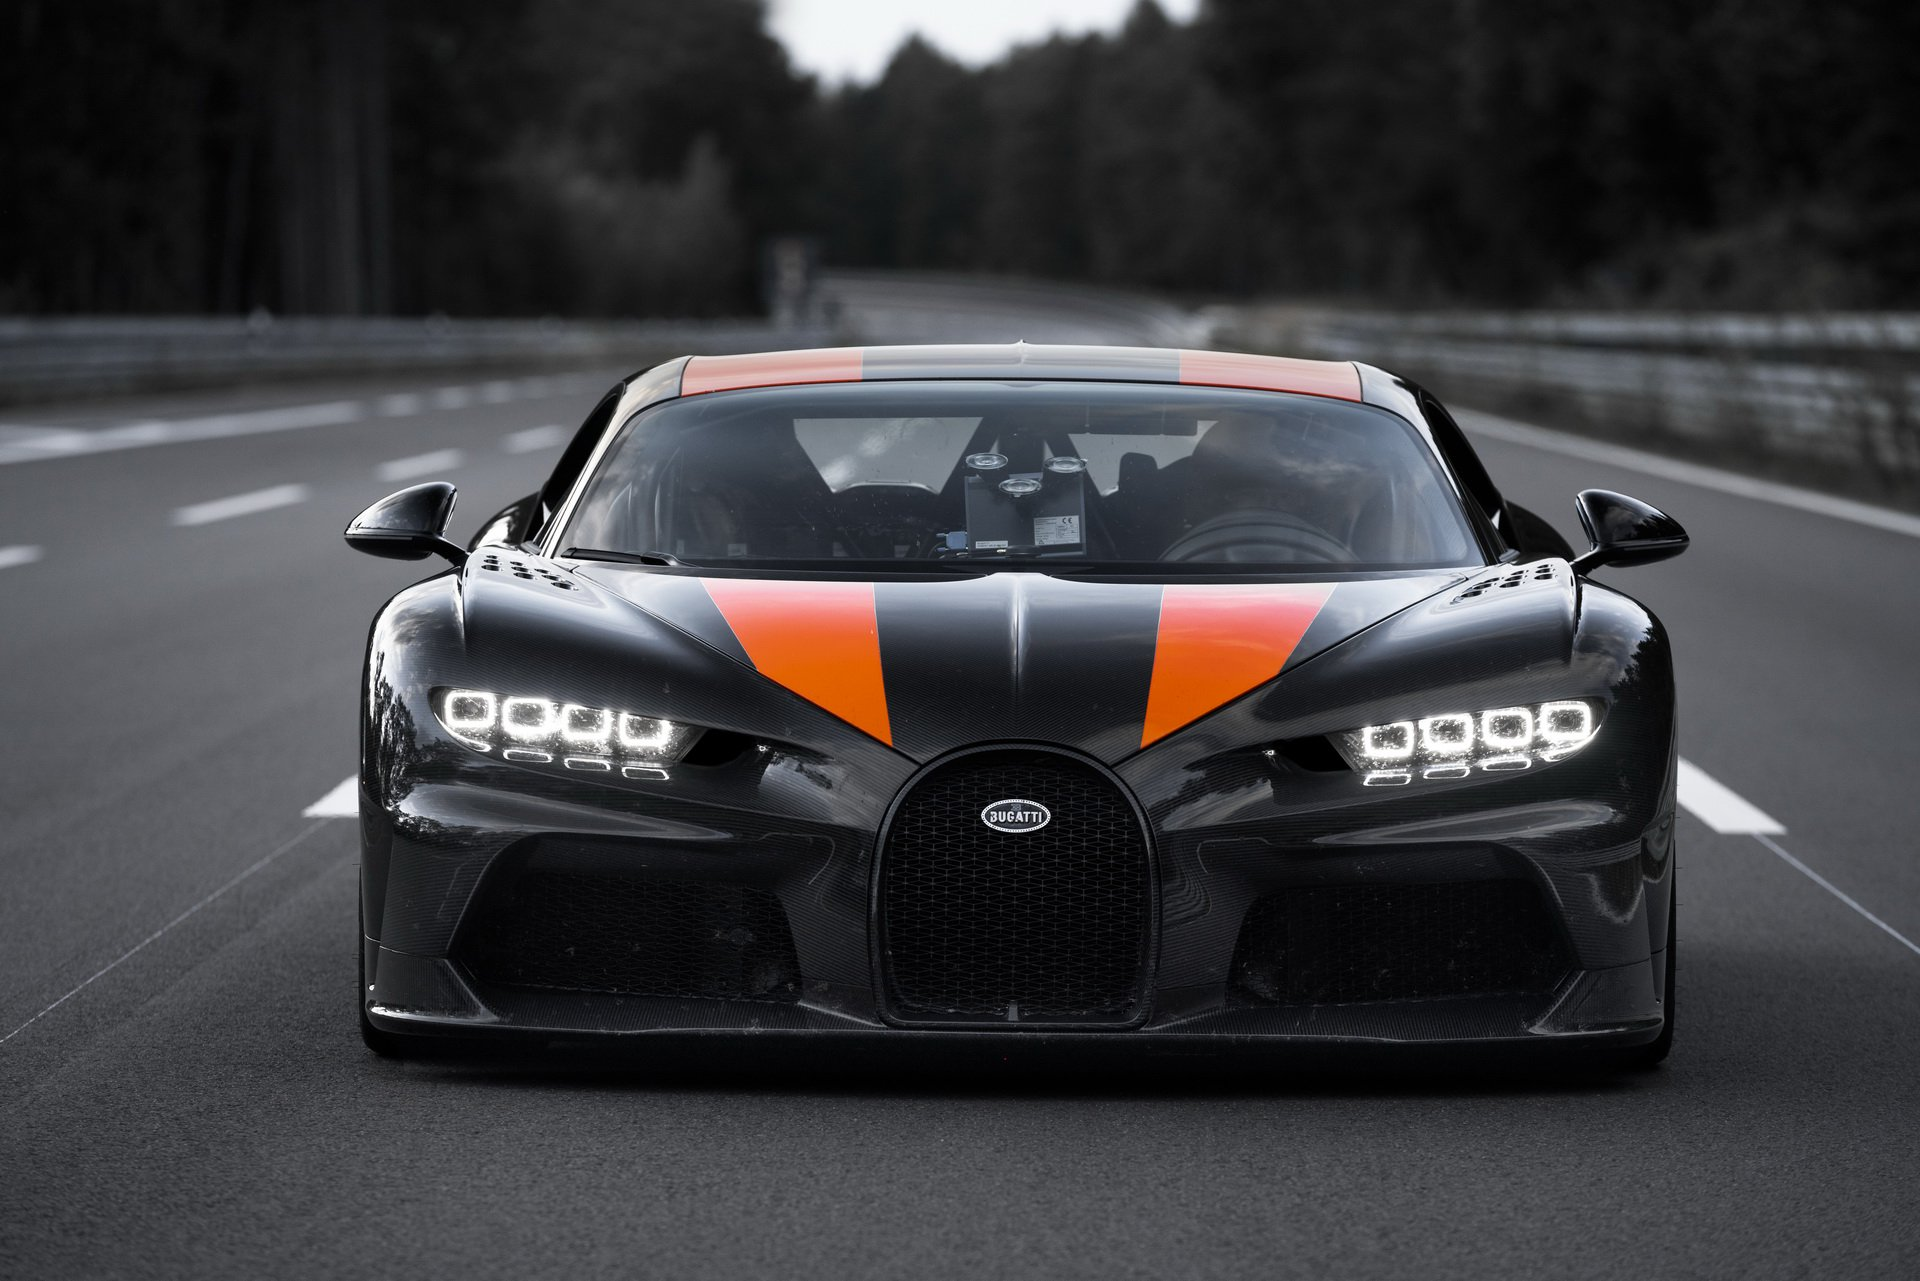 Bugatti Chiron - Top Speed